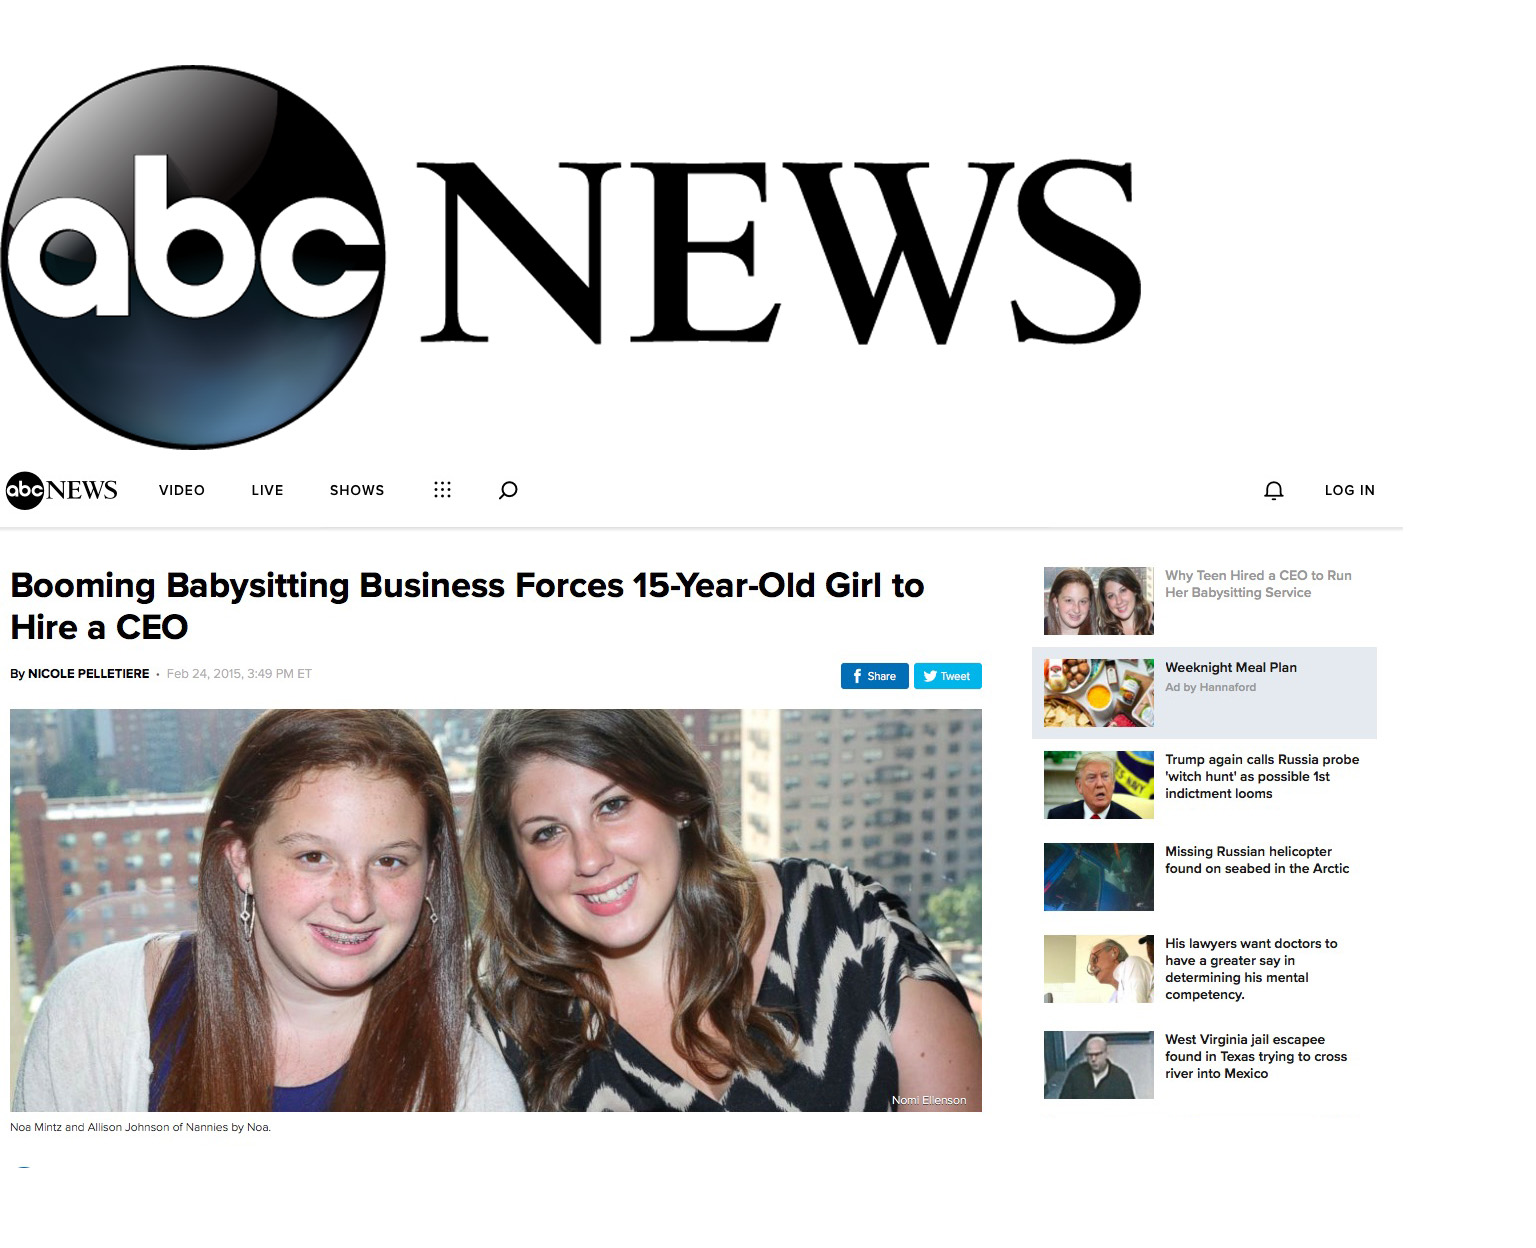 ABC NEWS Booming Babysitting Business Forces 15-Year-Old Girl to Hire a CEO - By day, Noa Mintz is your average high school freshman. After hours, however, the 15-year-old serves as director of Nannies by Noa, a New York City-based company that she independently founded in 2012.